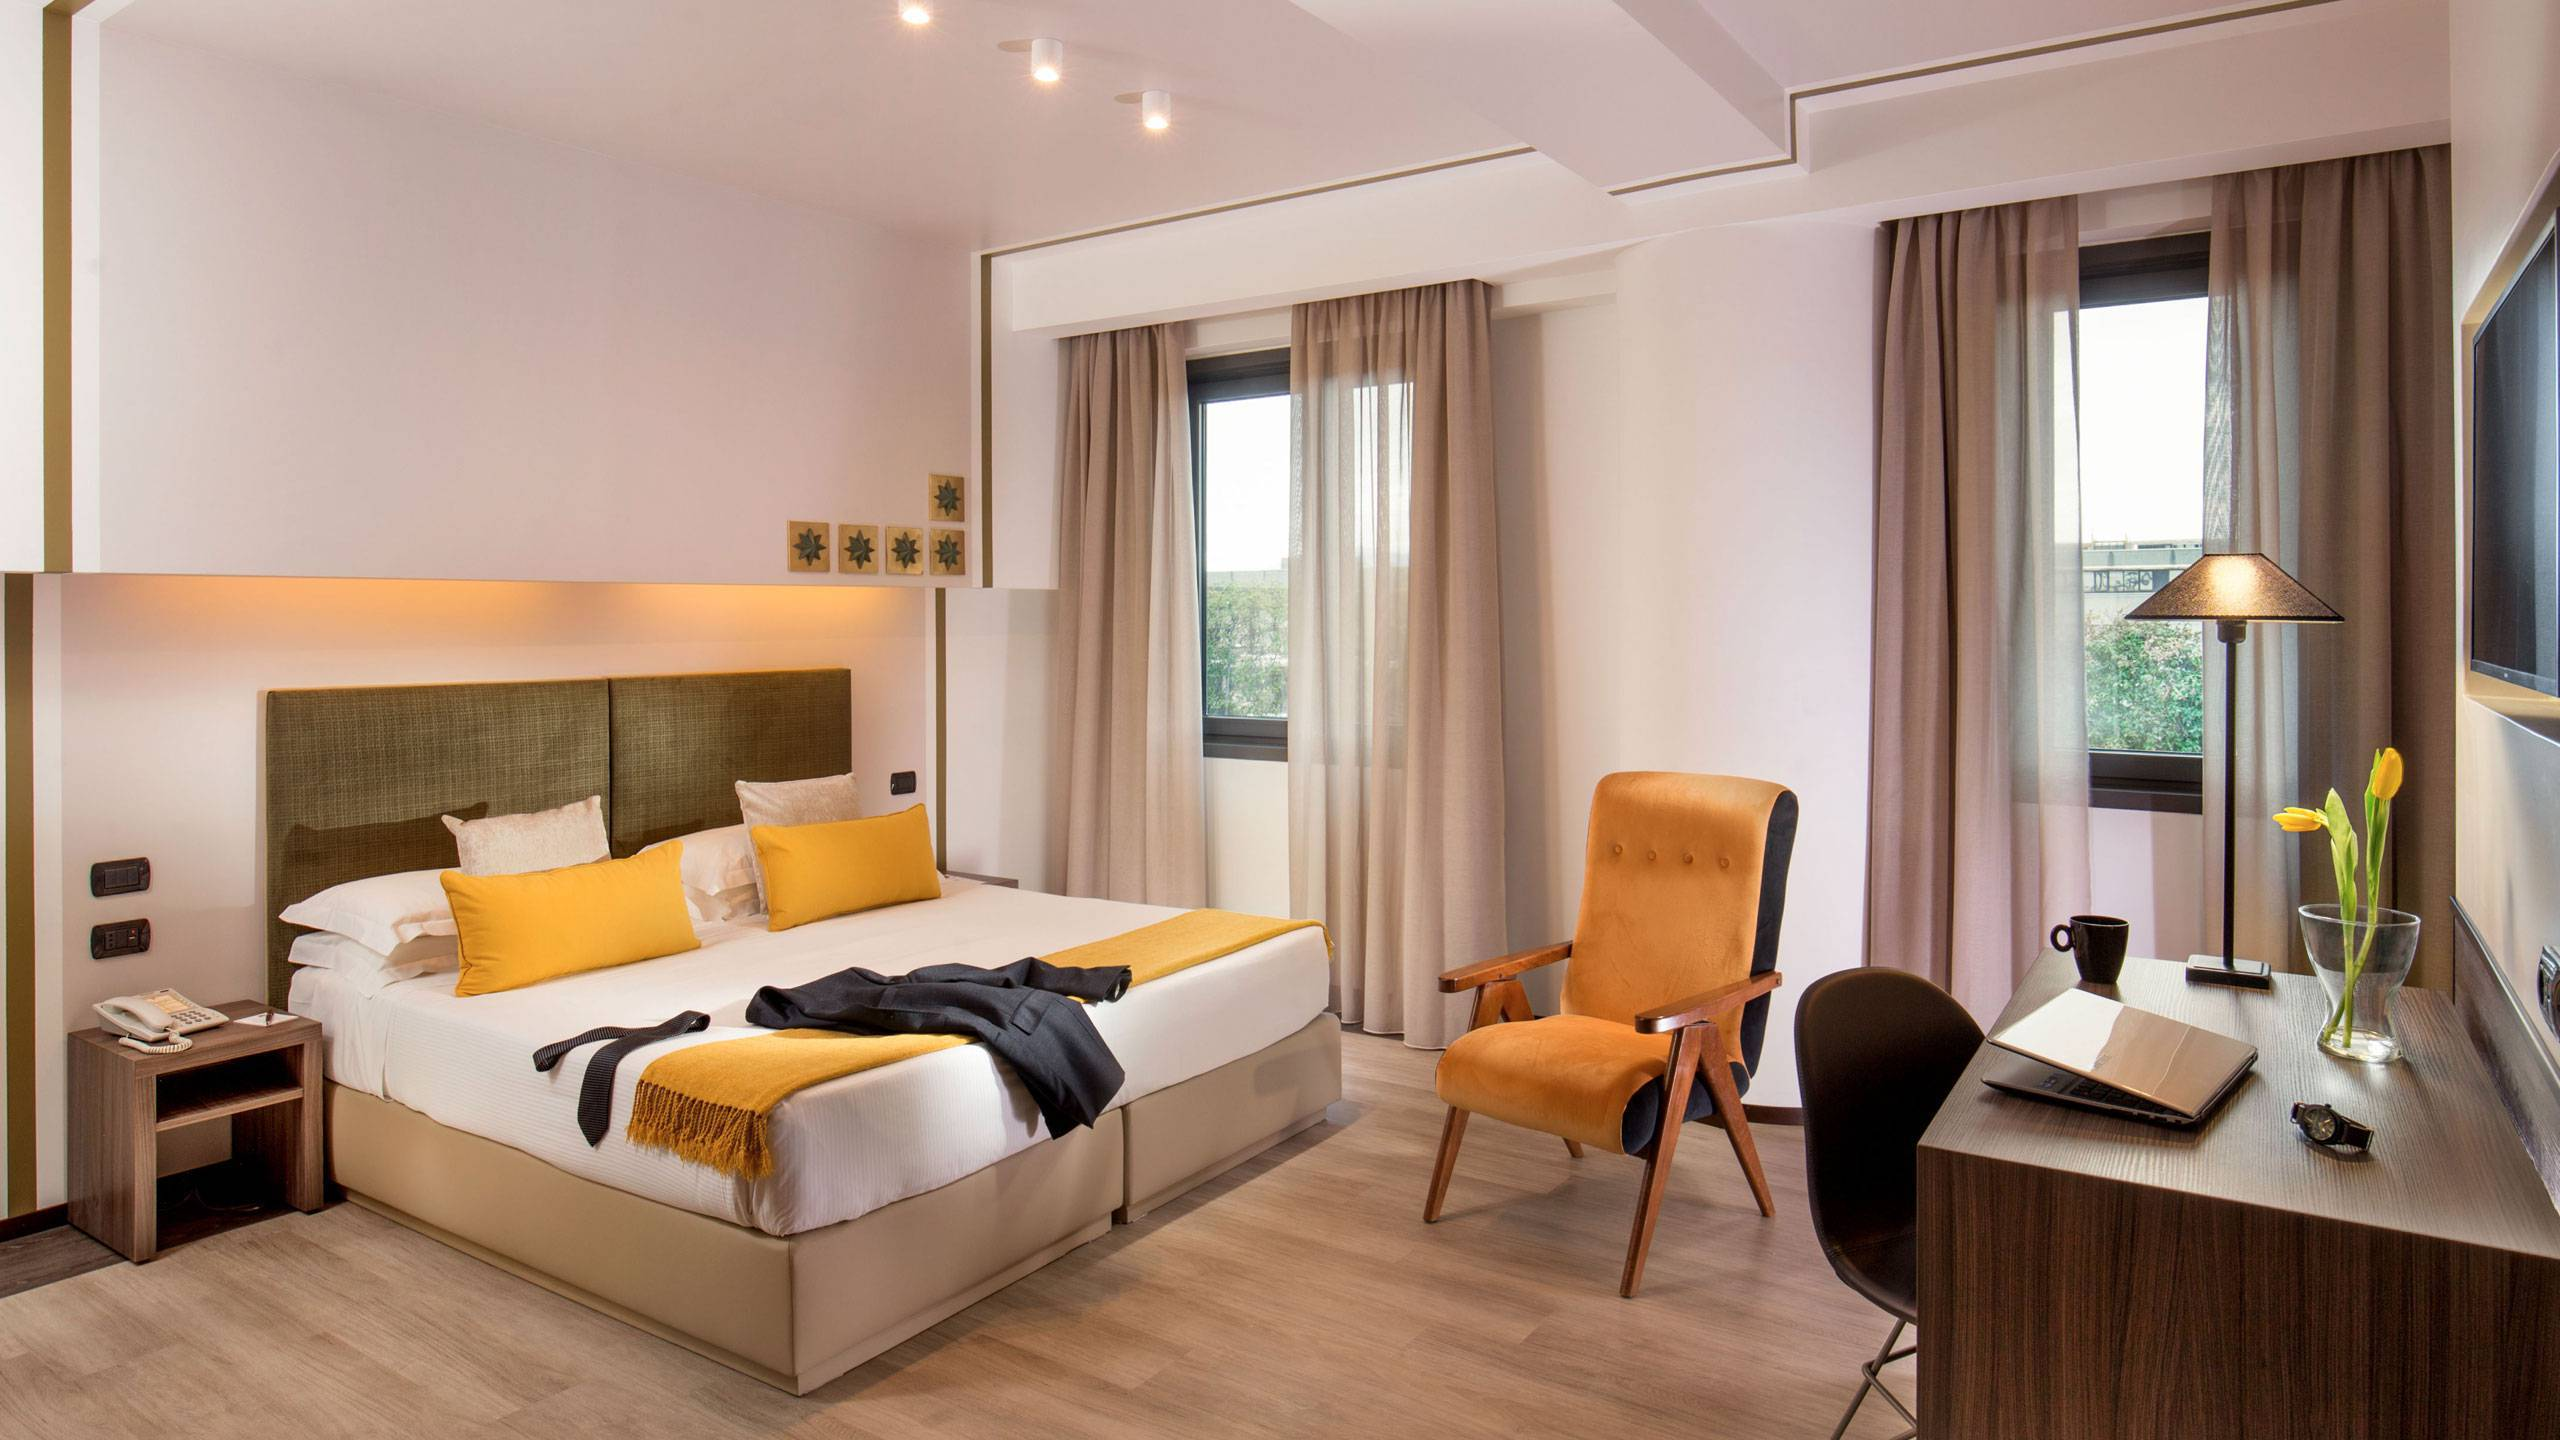 Domidea-Business-Hotel-Rome-rooms-26